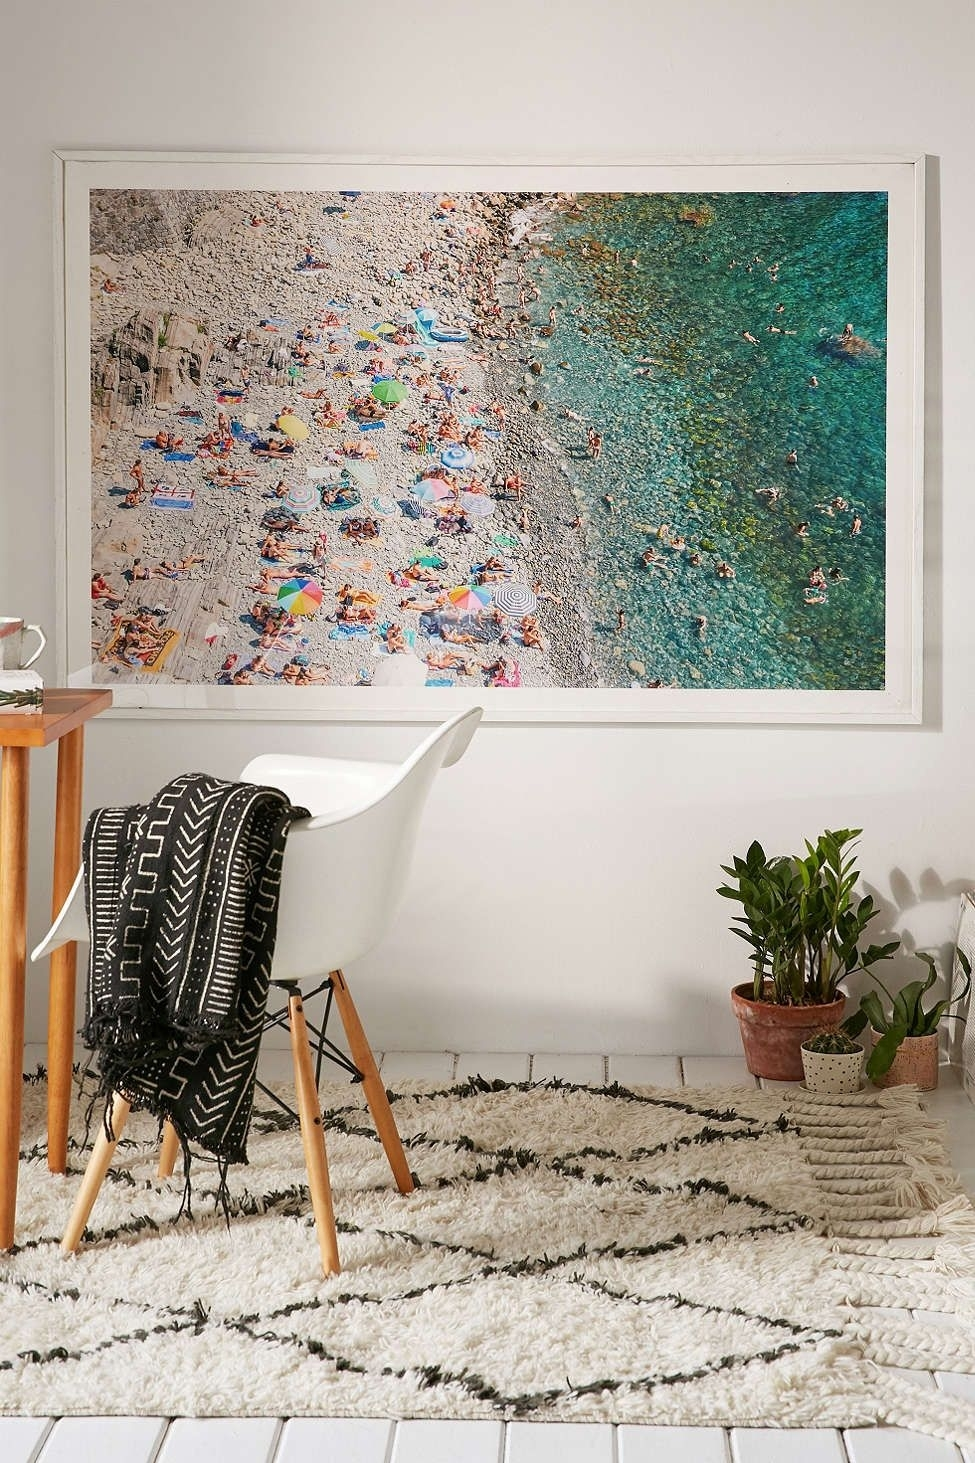 Urban Outfitters Home Spring Summer Collection 2016 Regarding Most Popular Urban Outfitters Wall Art (Gallery 4 of 20)